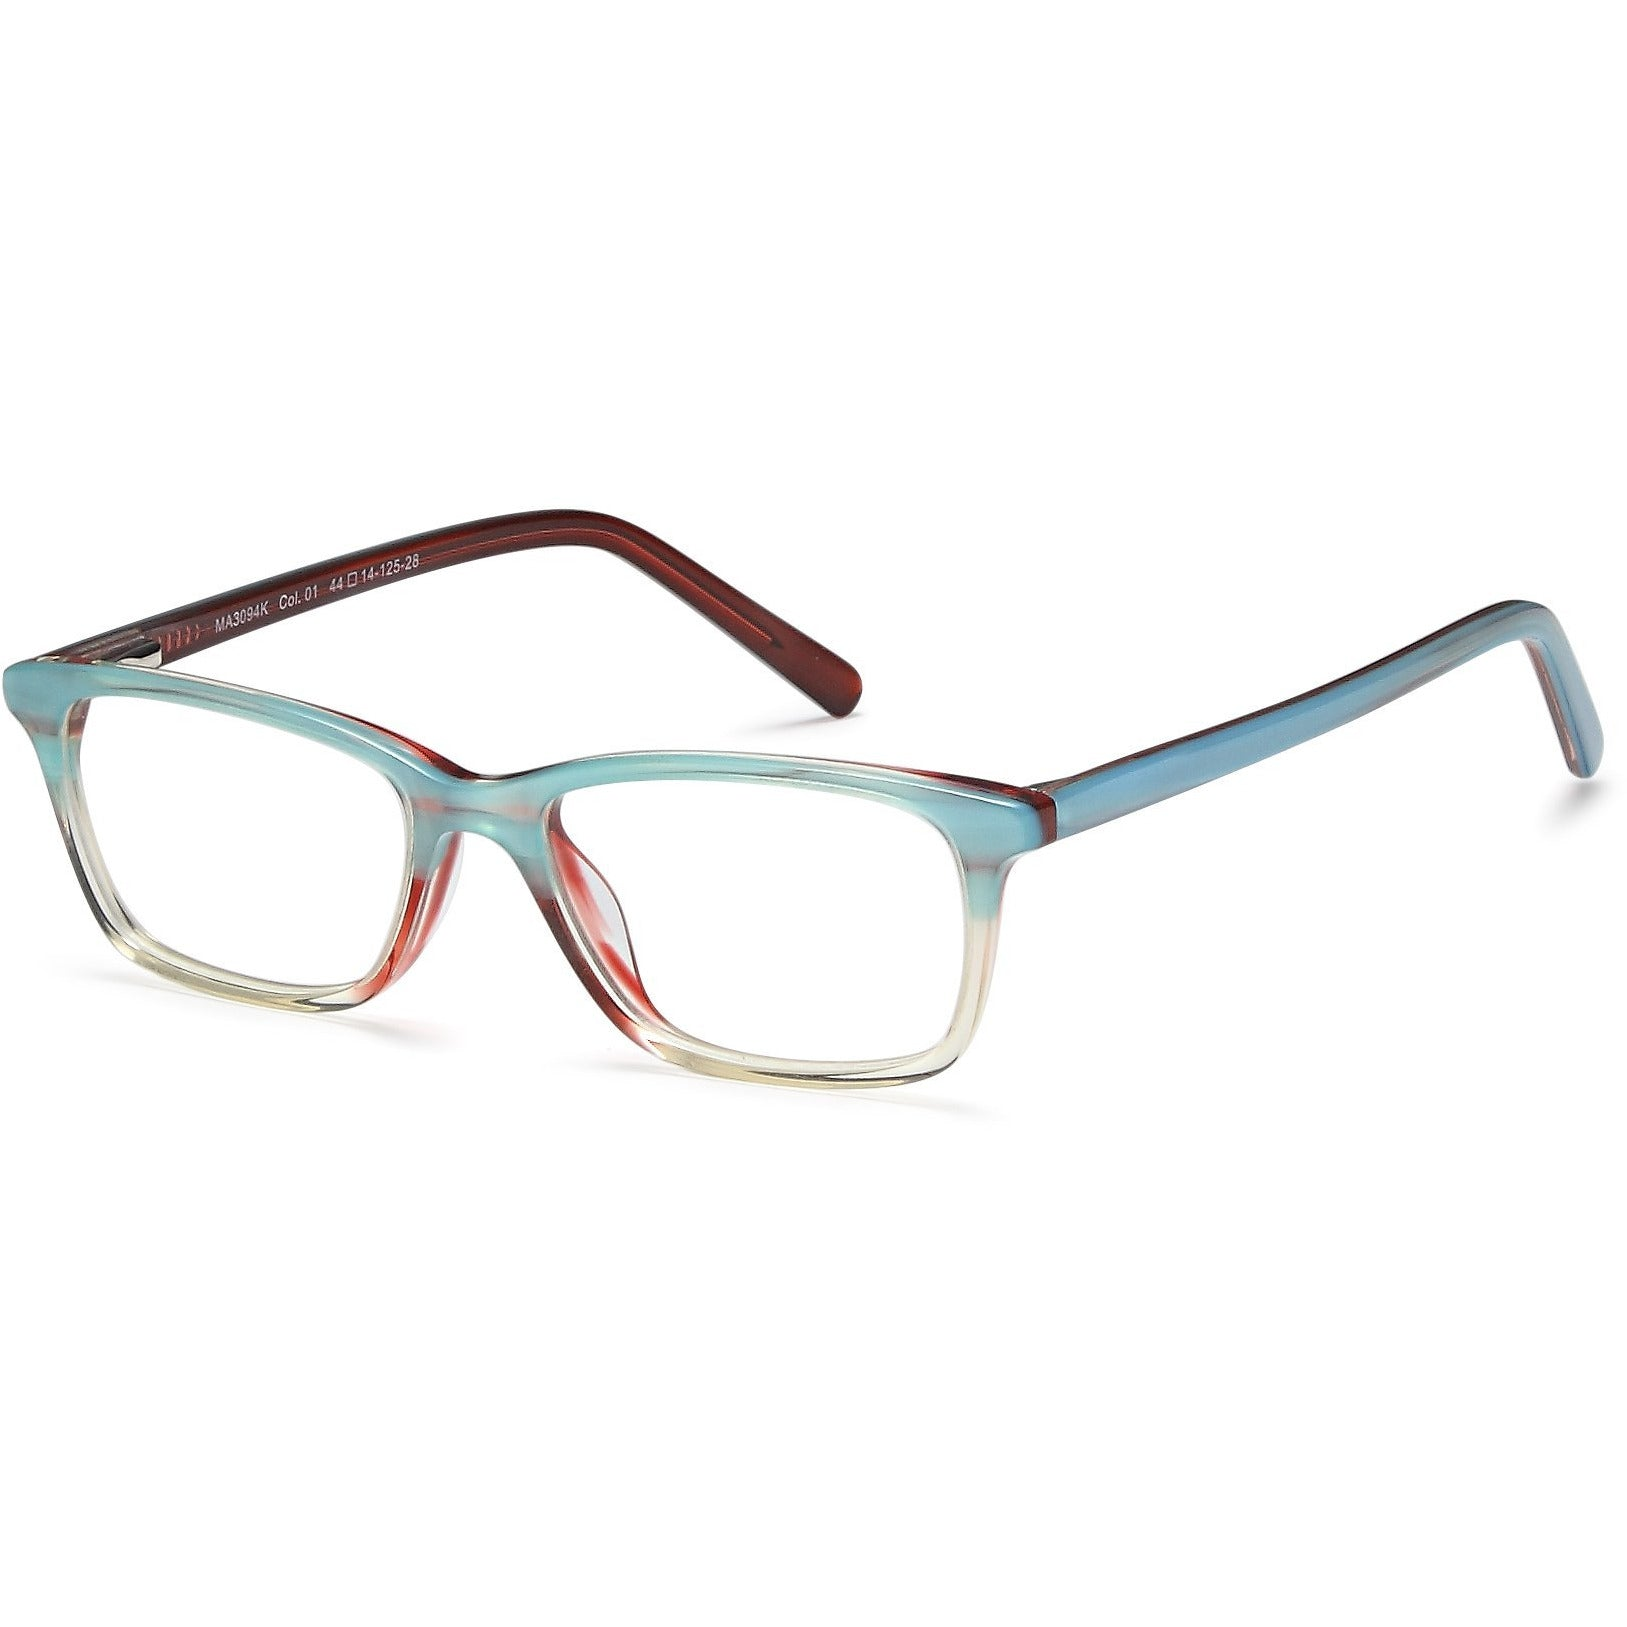 Menizzi Kids Prescription Glasses M3094K Eyeglasses Frames